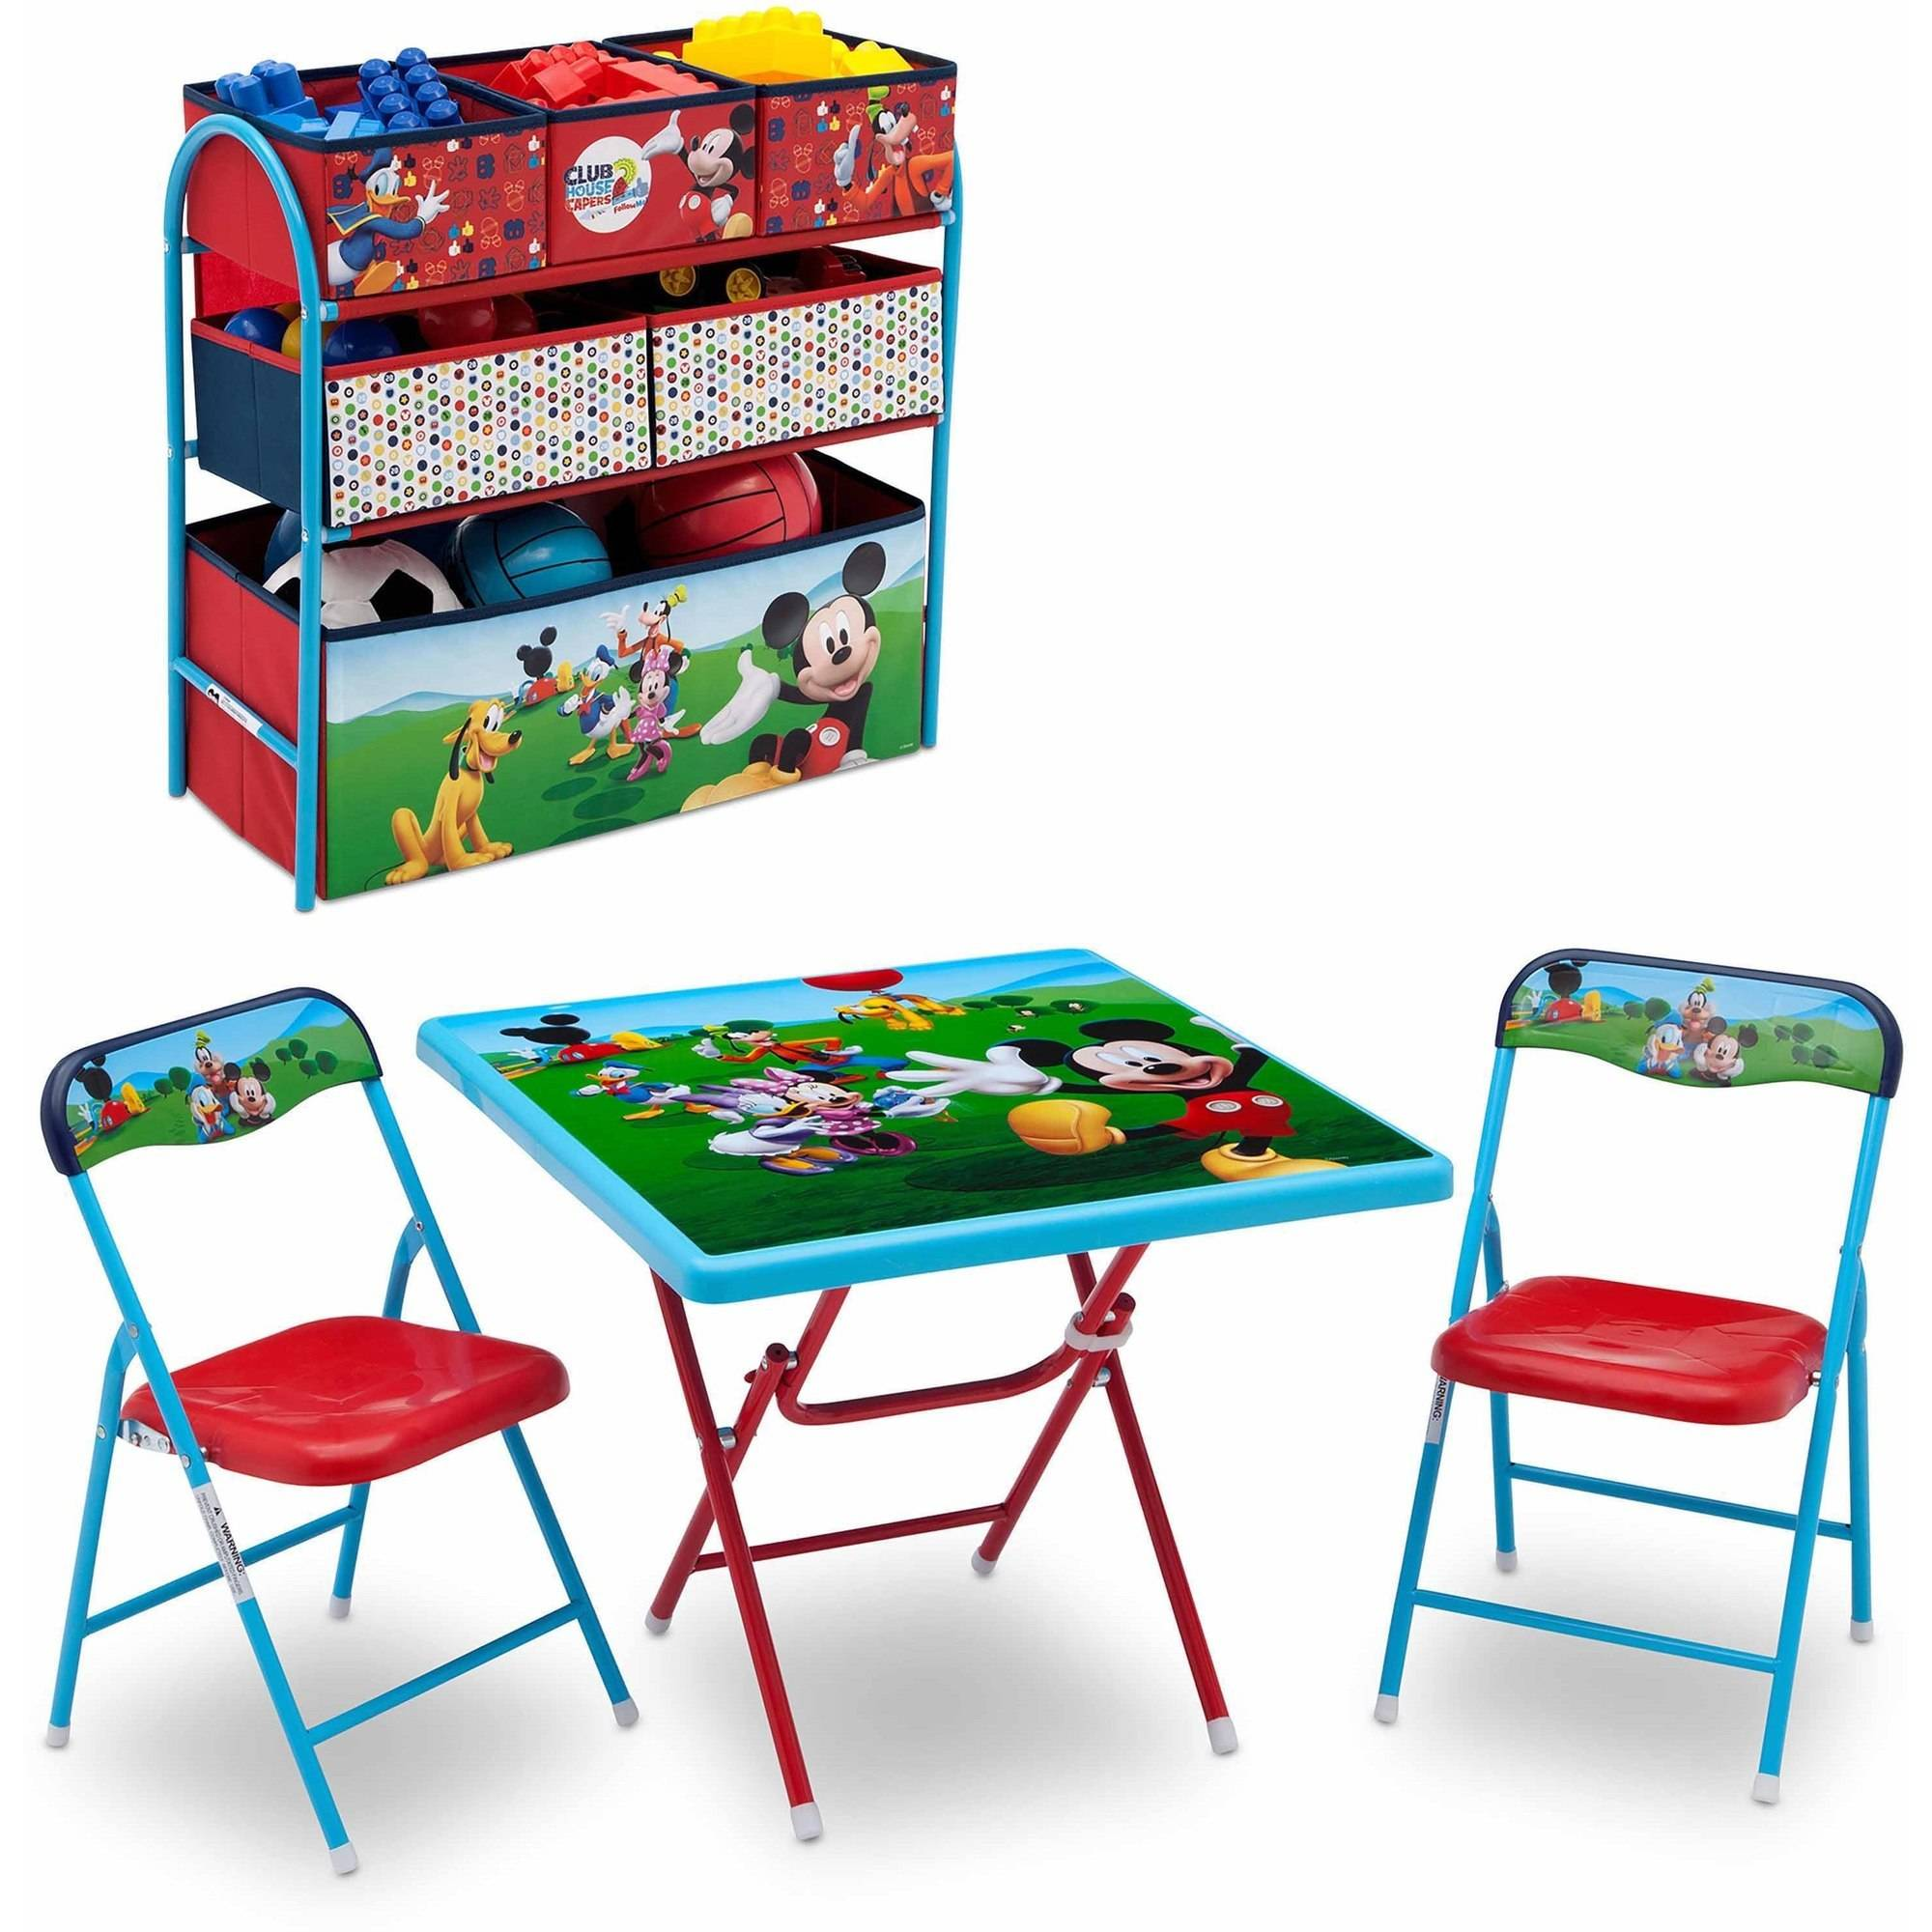 Disney Mickey Mouse, Toddler Children Playroom Solution